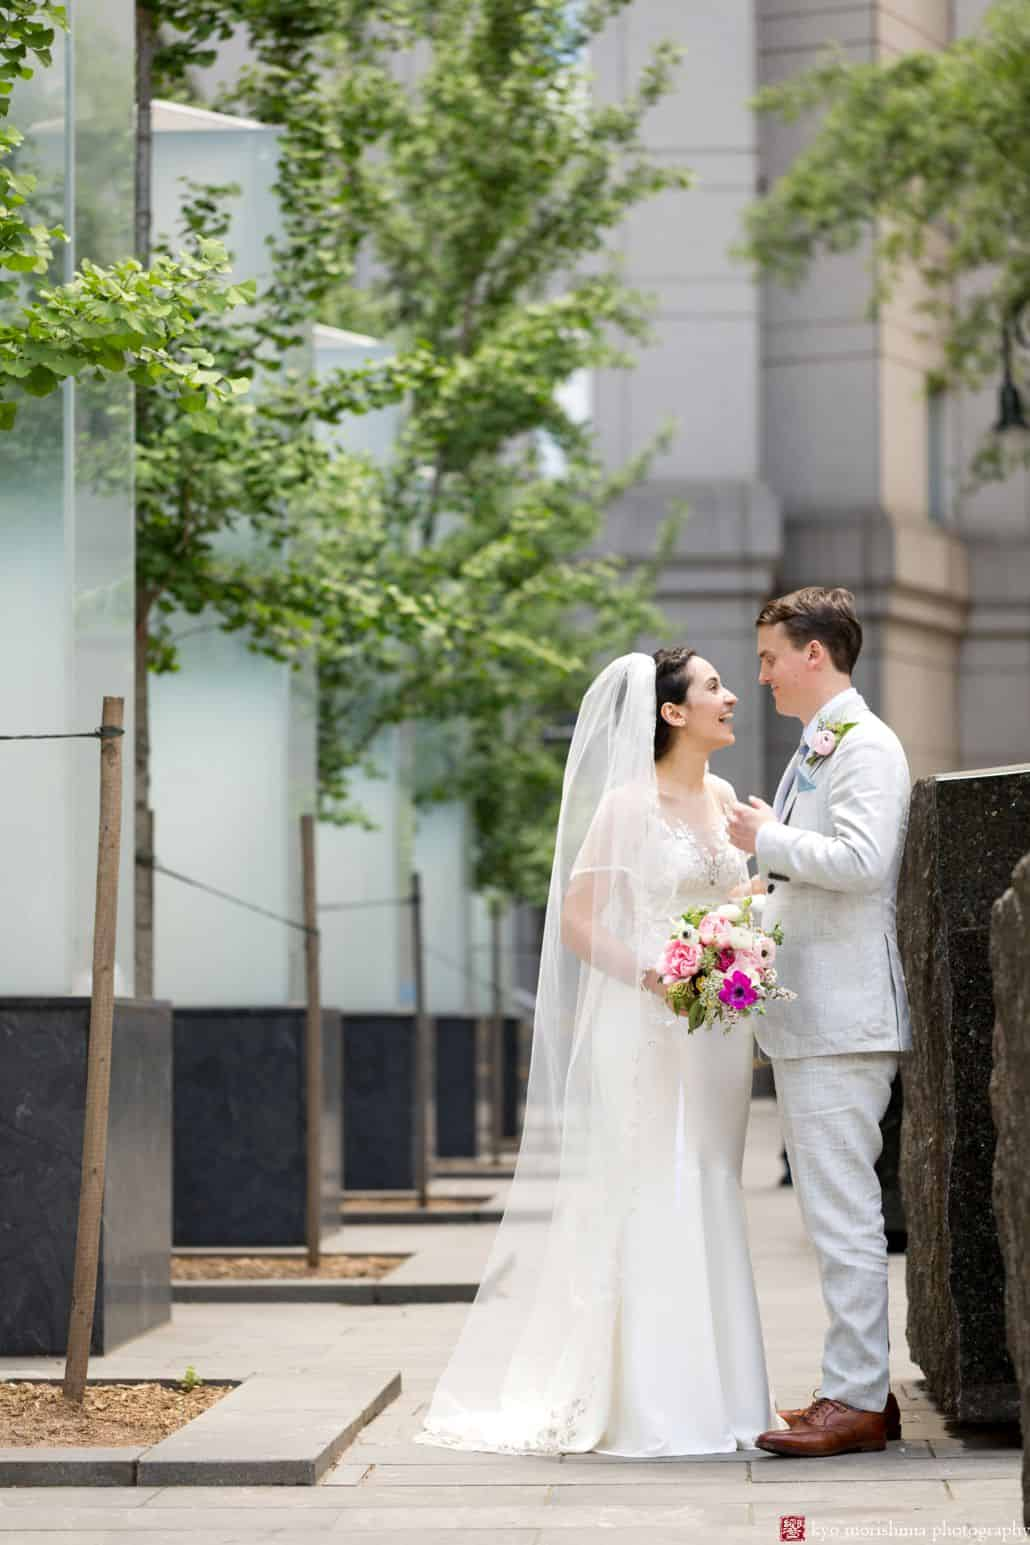 NYC City Hall wedding photos: Bride and groom smile at one another outside City Hall. Pink, fuschia and white bouquet, groom wears light gray linen suit. Small trees in the background. Summer NYC City Hall wedding photos. Homecoming florist.